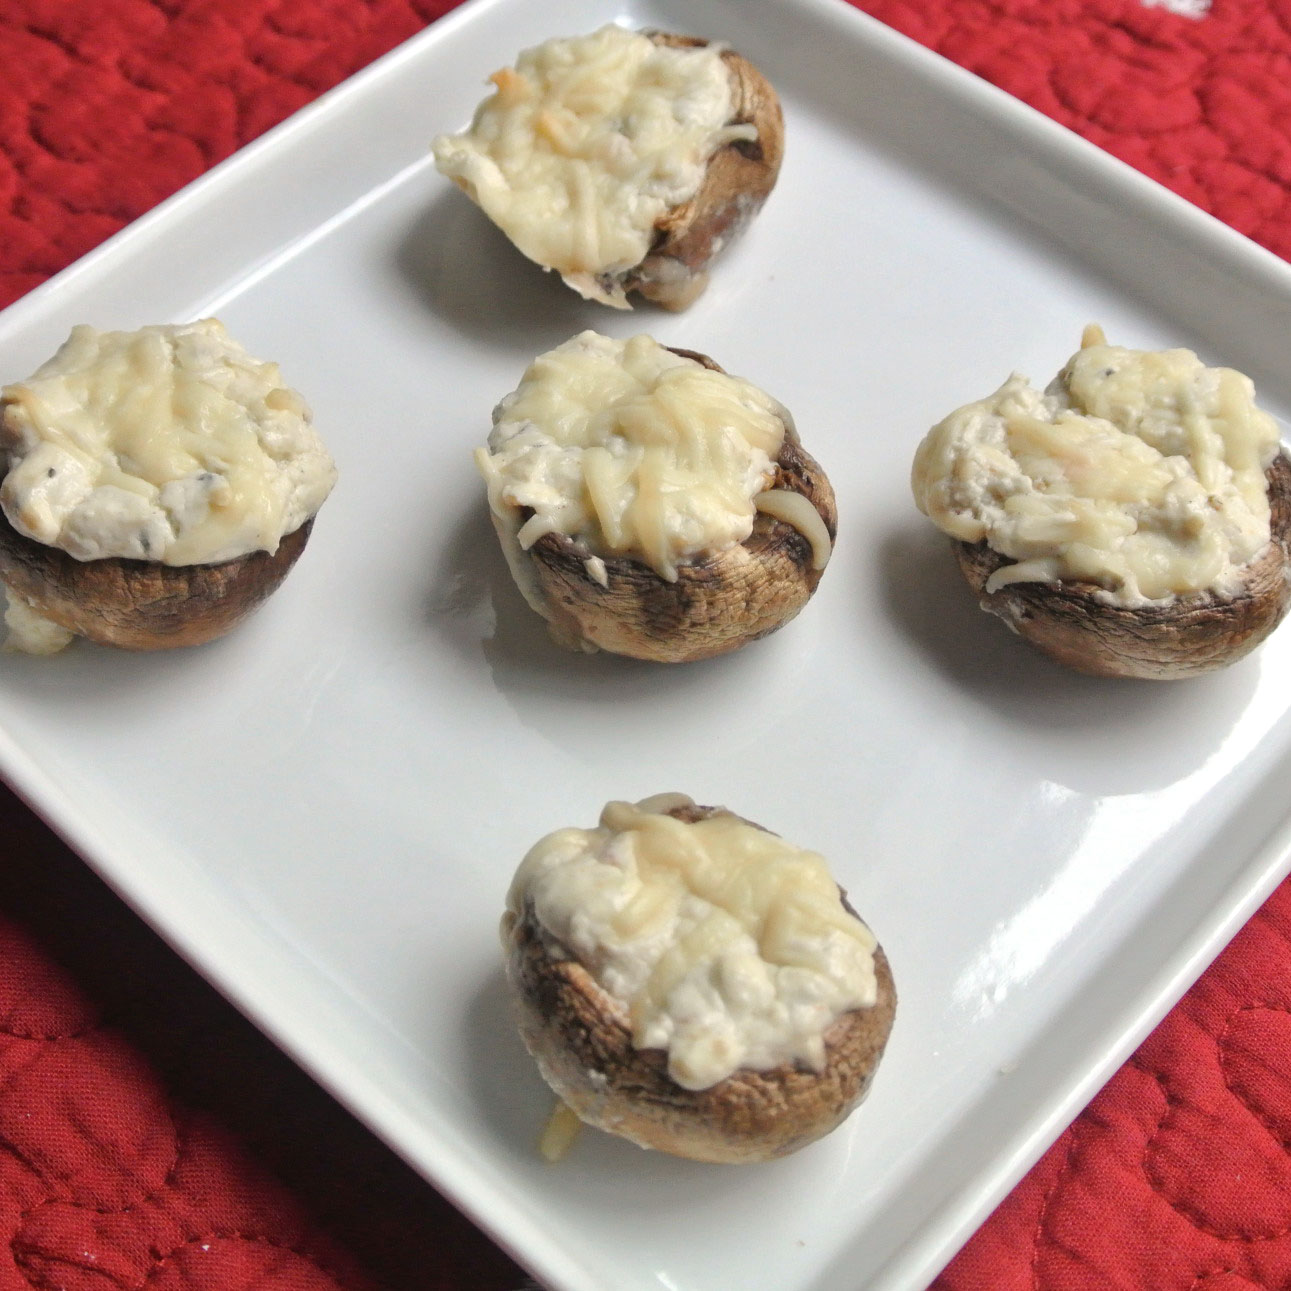 Mom, What's For Dinner?: Gorgonzola stuffed mushrooms